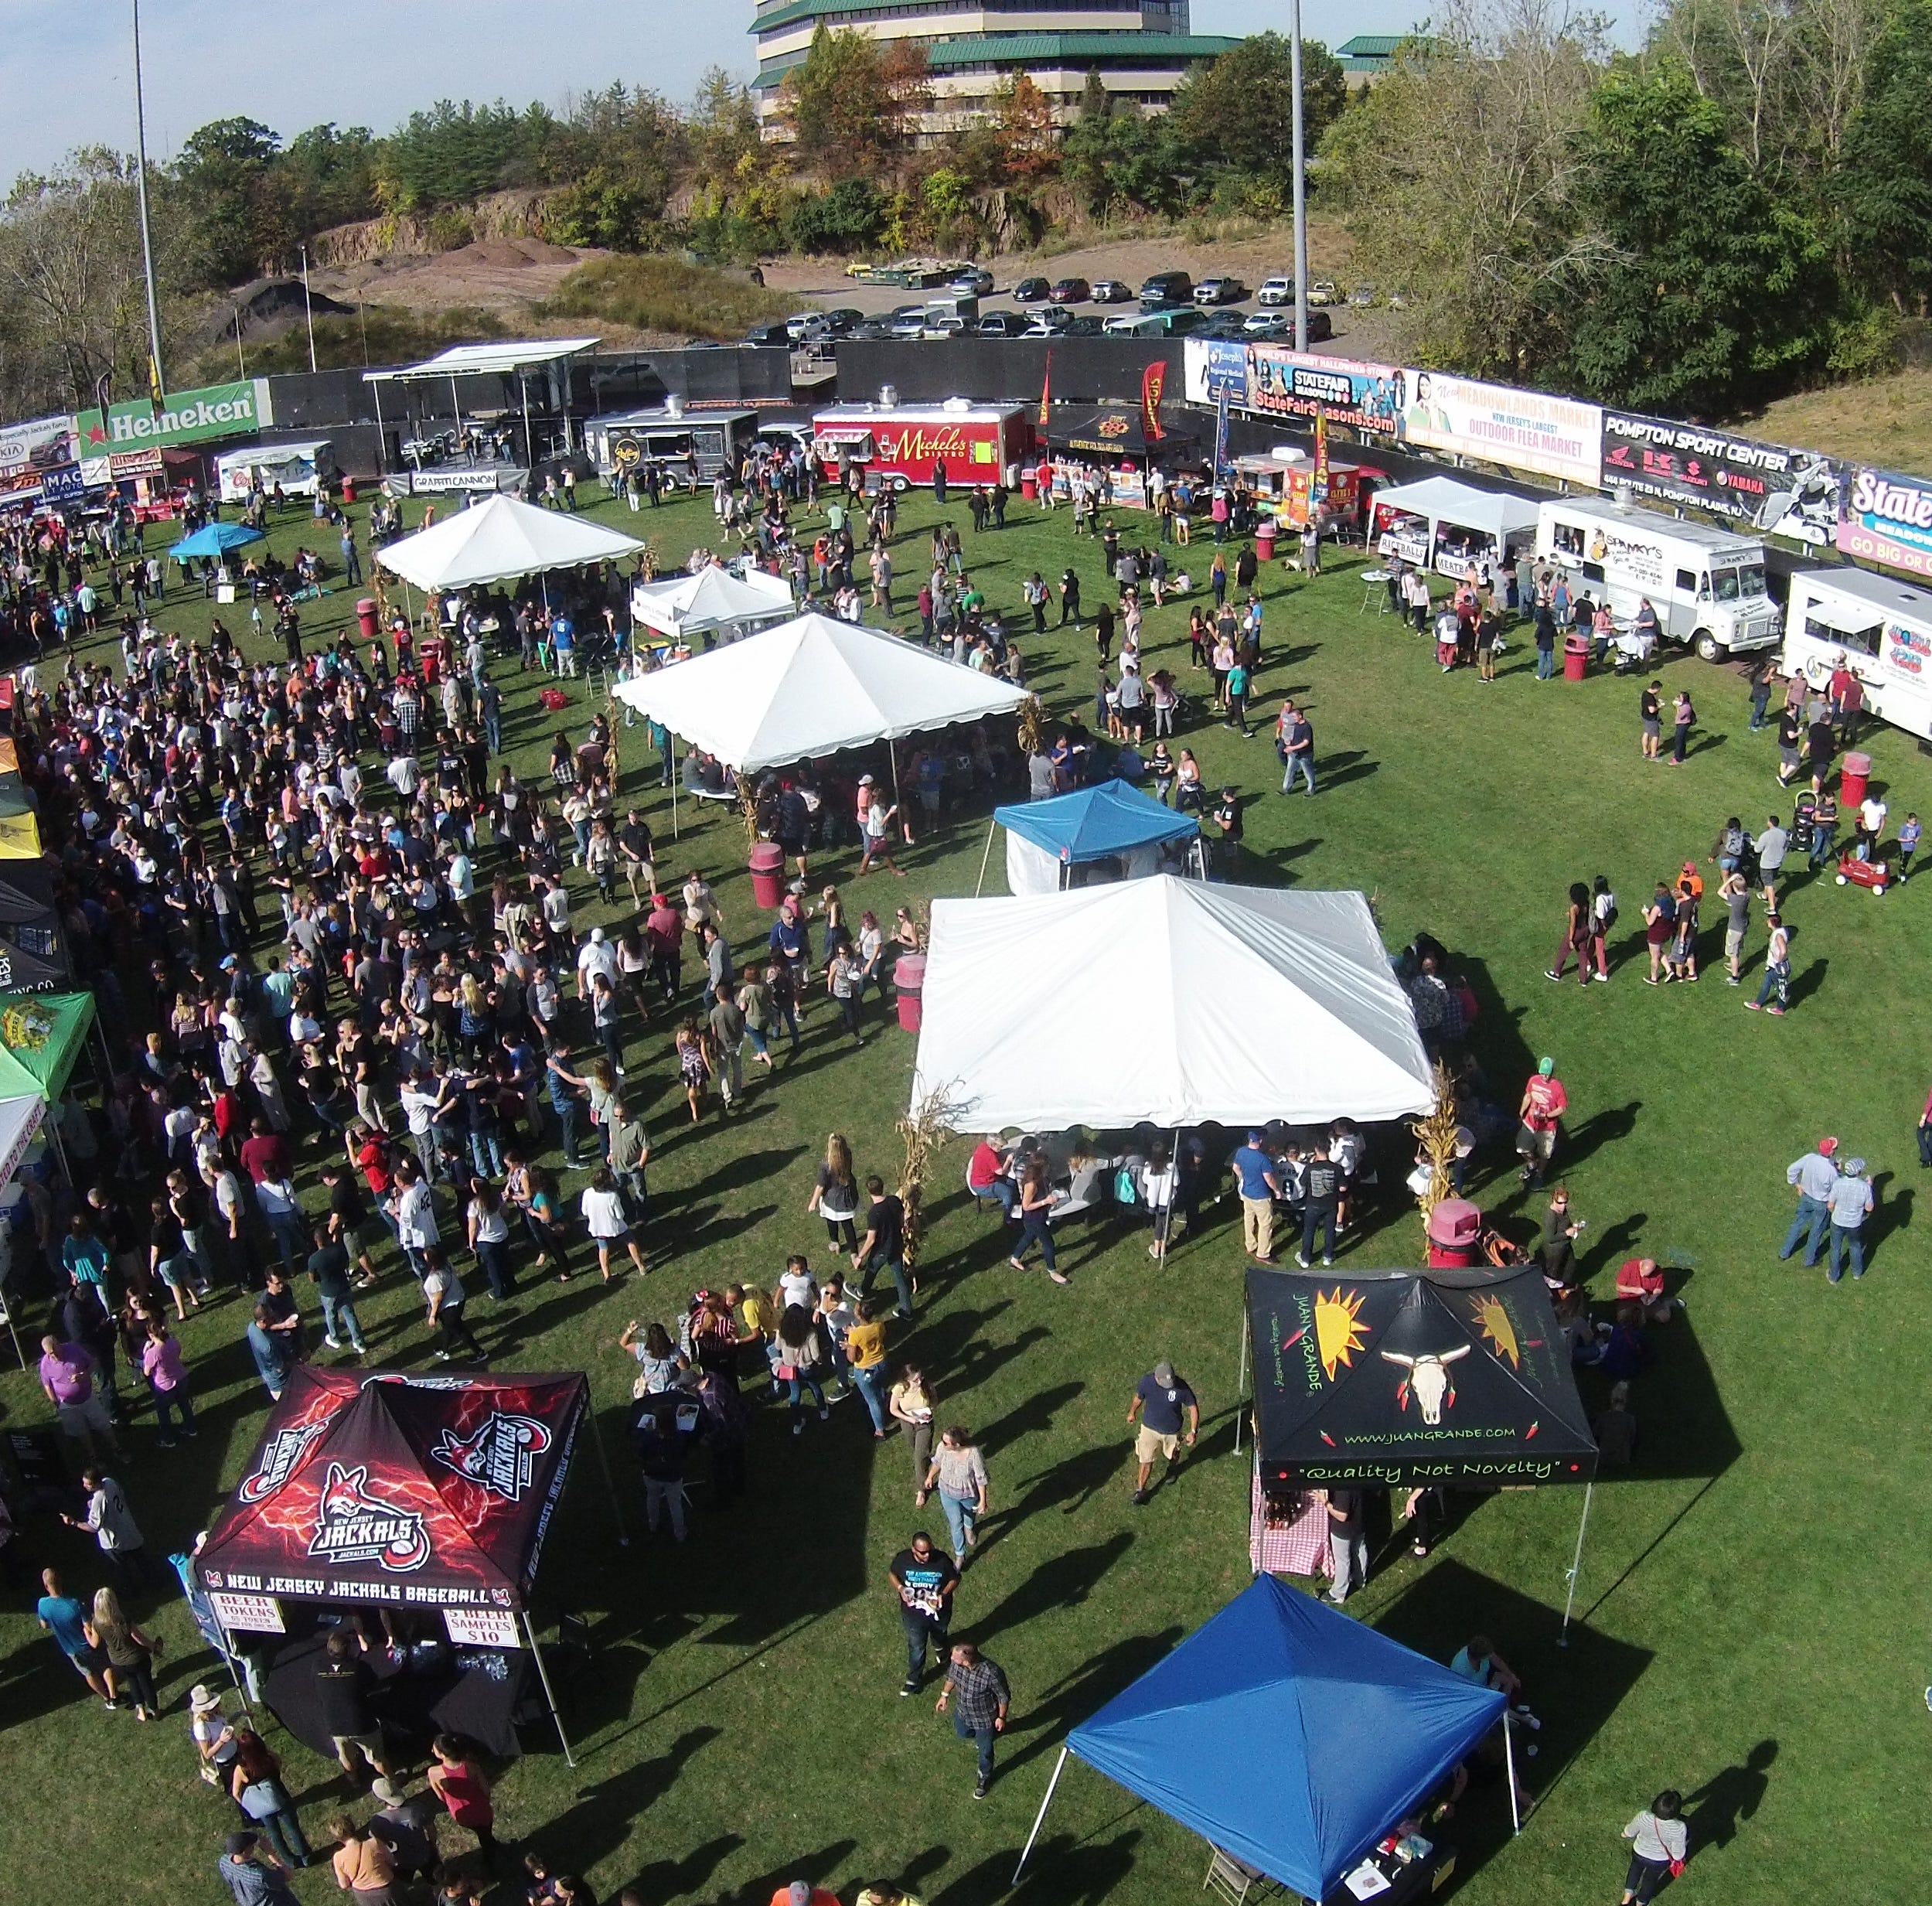 FYI: Food Truck and Craft Beer Festival headed to Yogi Berra Stadium